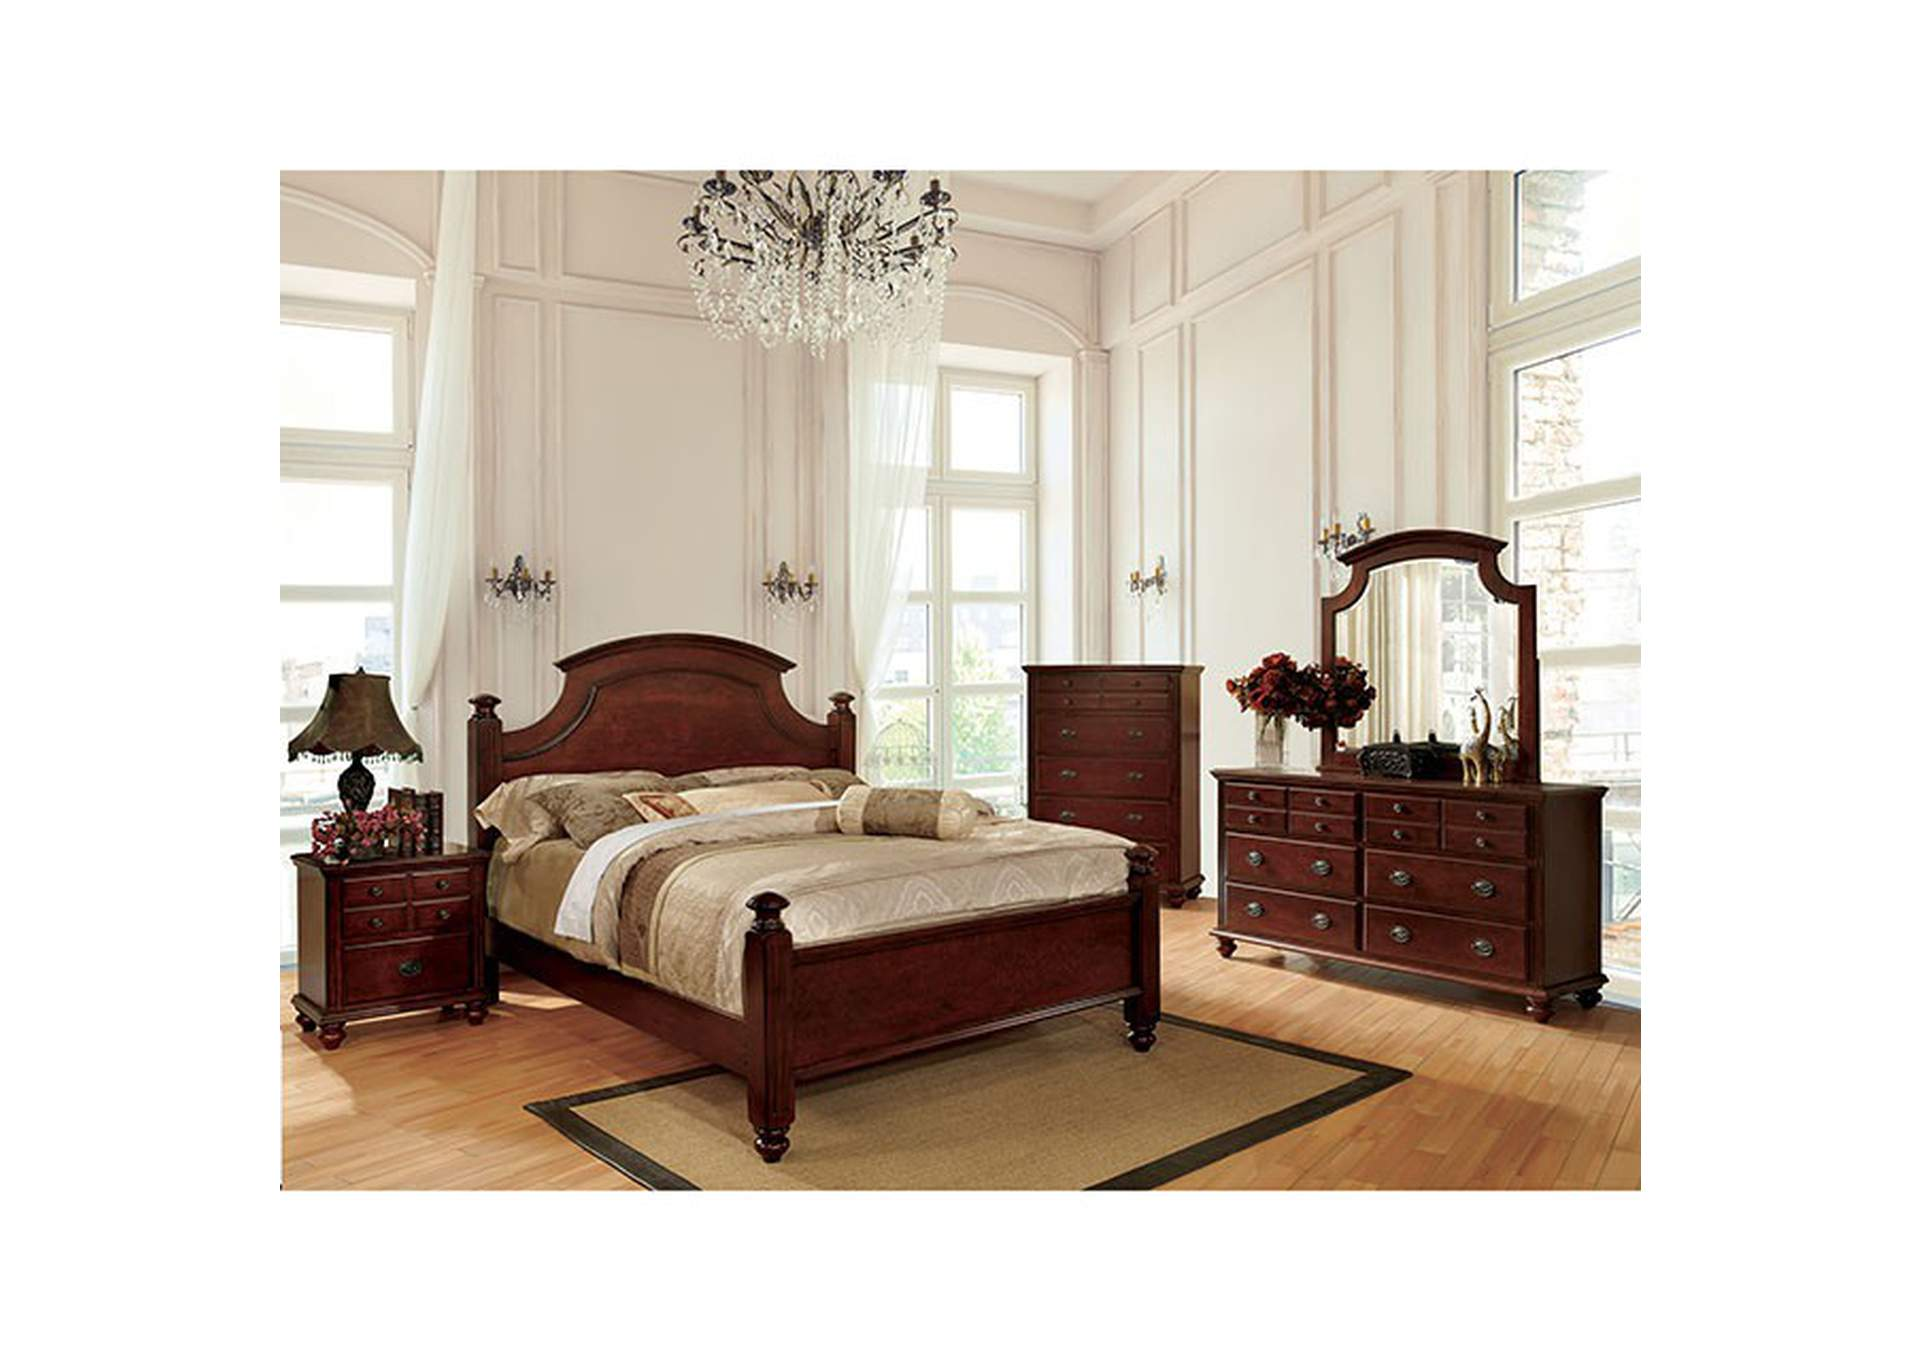 Gabrielle II Cherry Queen Poster Bed,Furniture of America